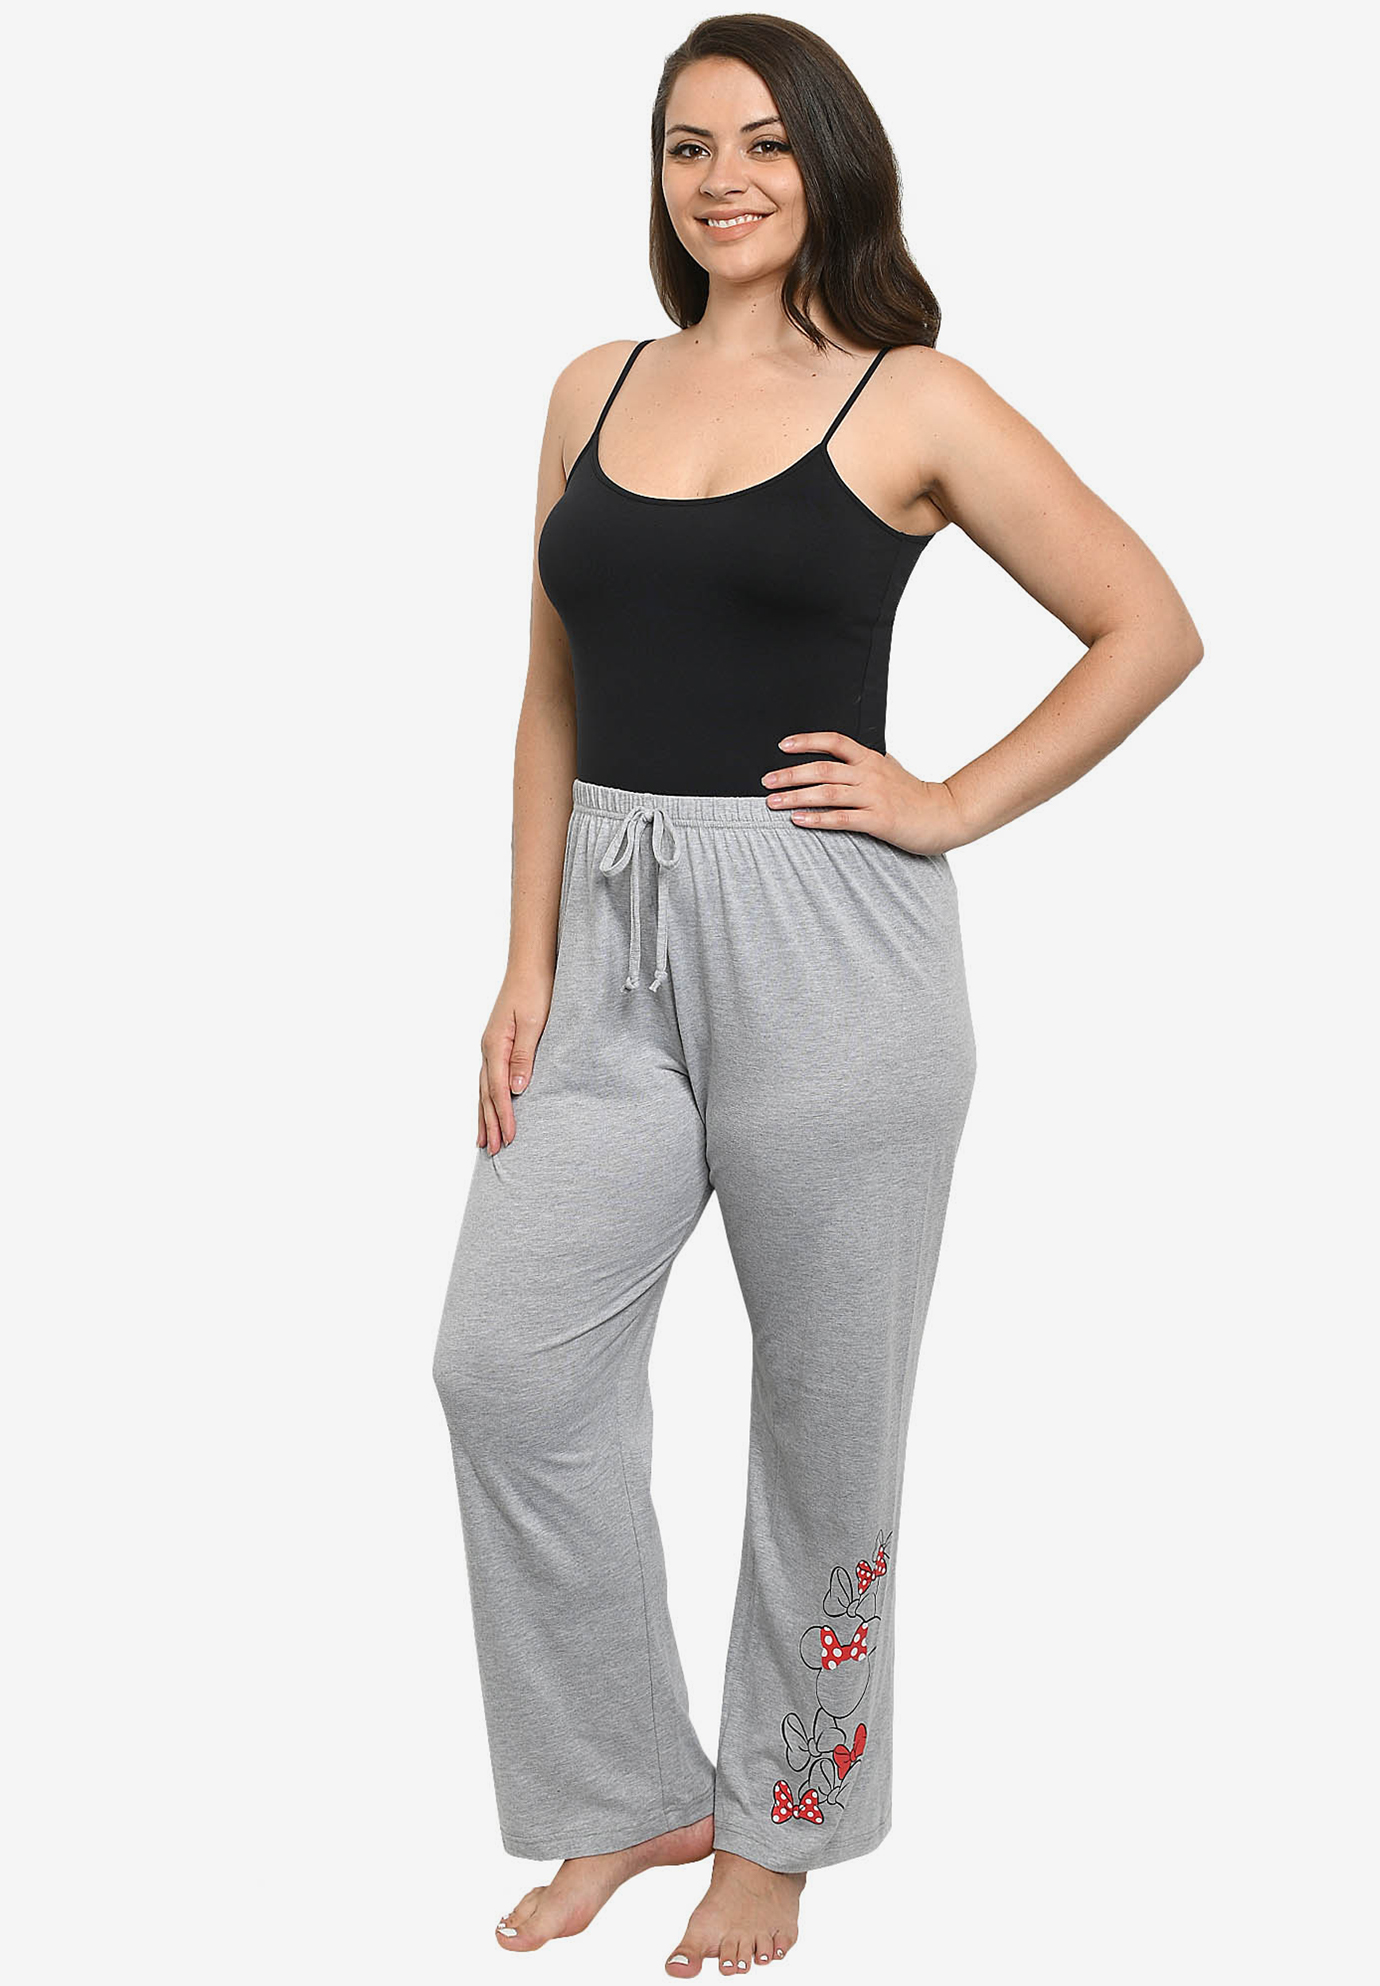 Disney Womens Minnie Mouse Bows Lounge Pants Gray,